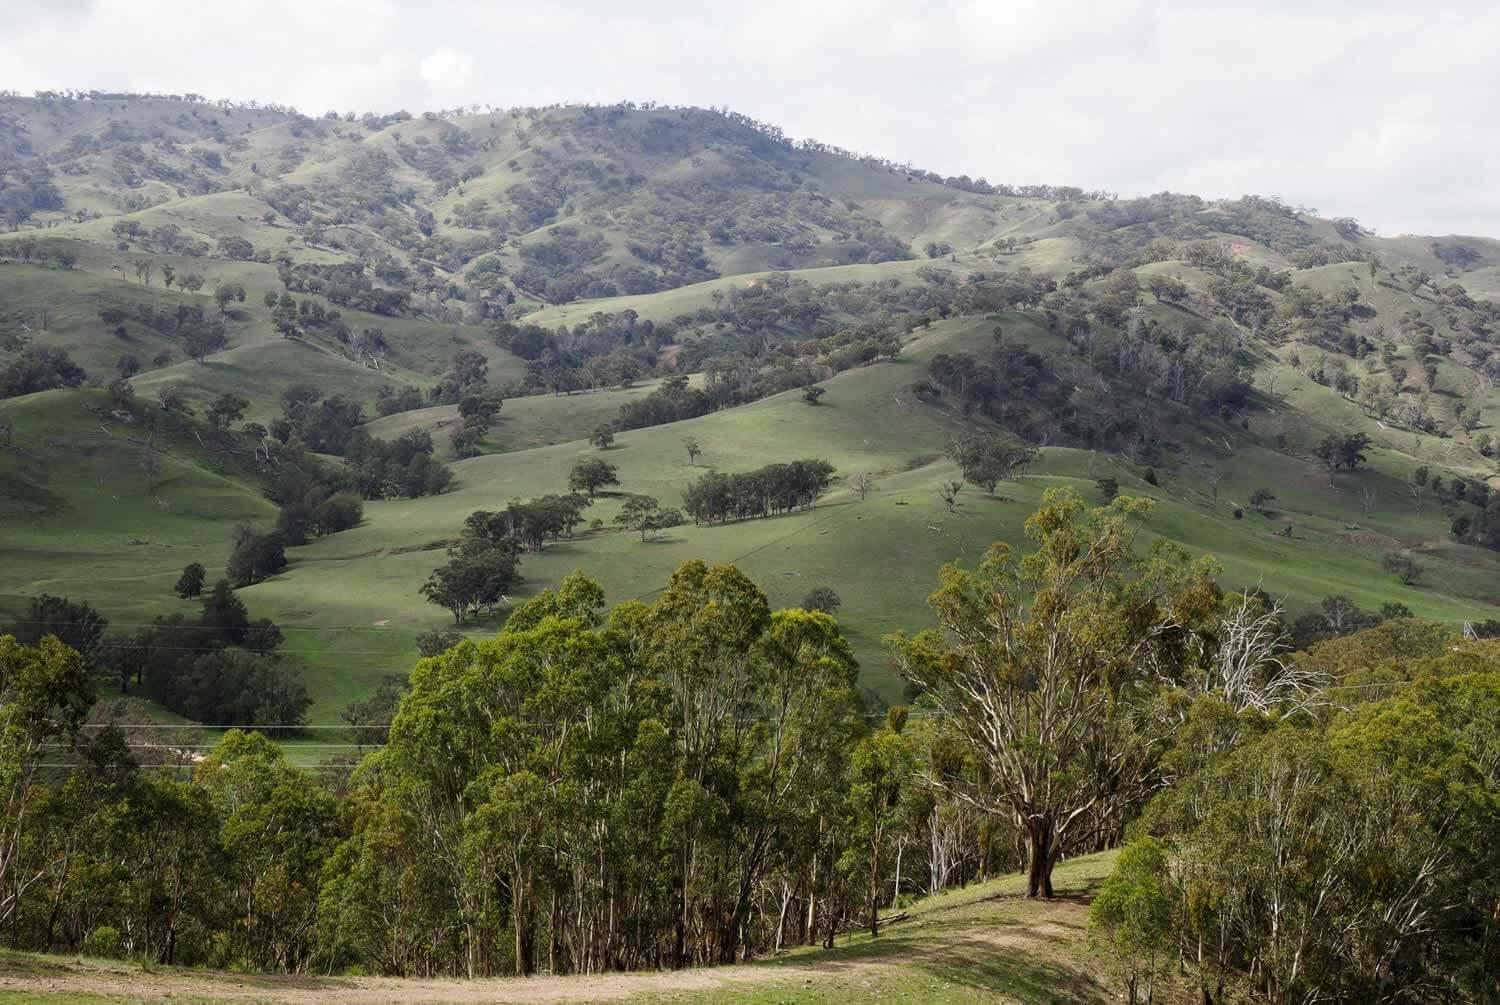 Property for Sale Hunter Valley NSW - Scotts Creek